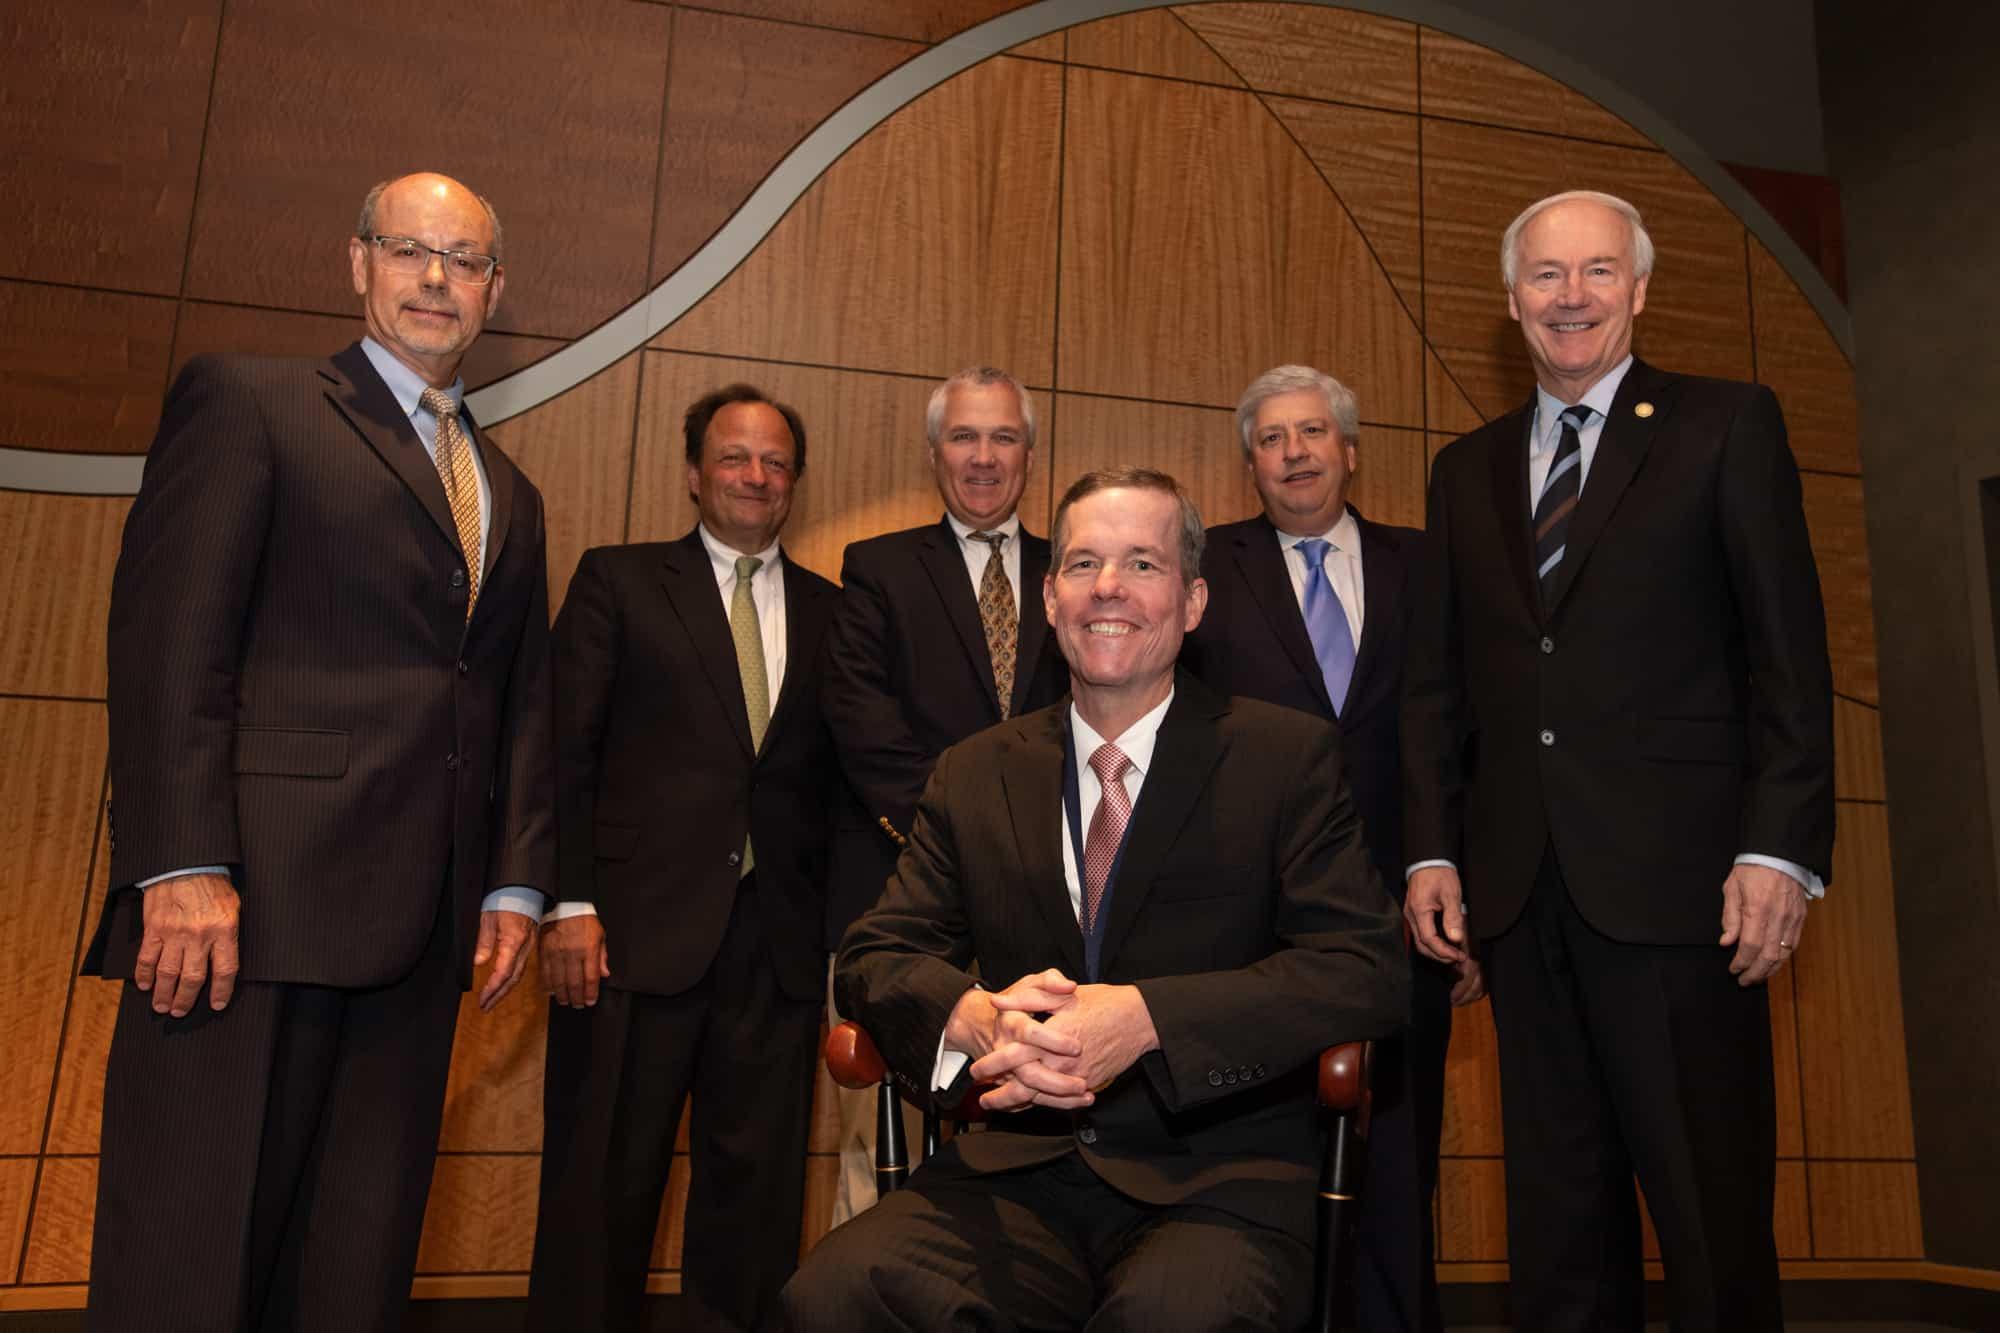 Patterson sits in his chair at the investiture ceremony. Behind him are (from left to right): Donald Bobbitt, Ph.D., Michael E. Mendelsohn, M.D., Steve Carpenter, M.D., John Goodson, and Gov. Asa Hutchinson.